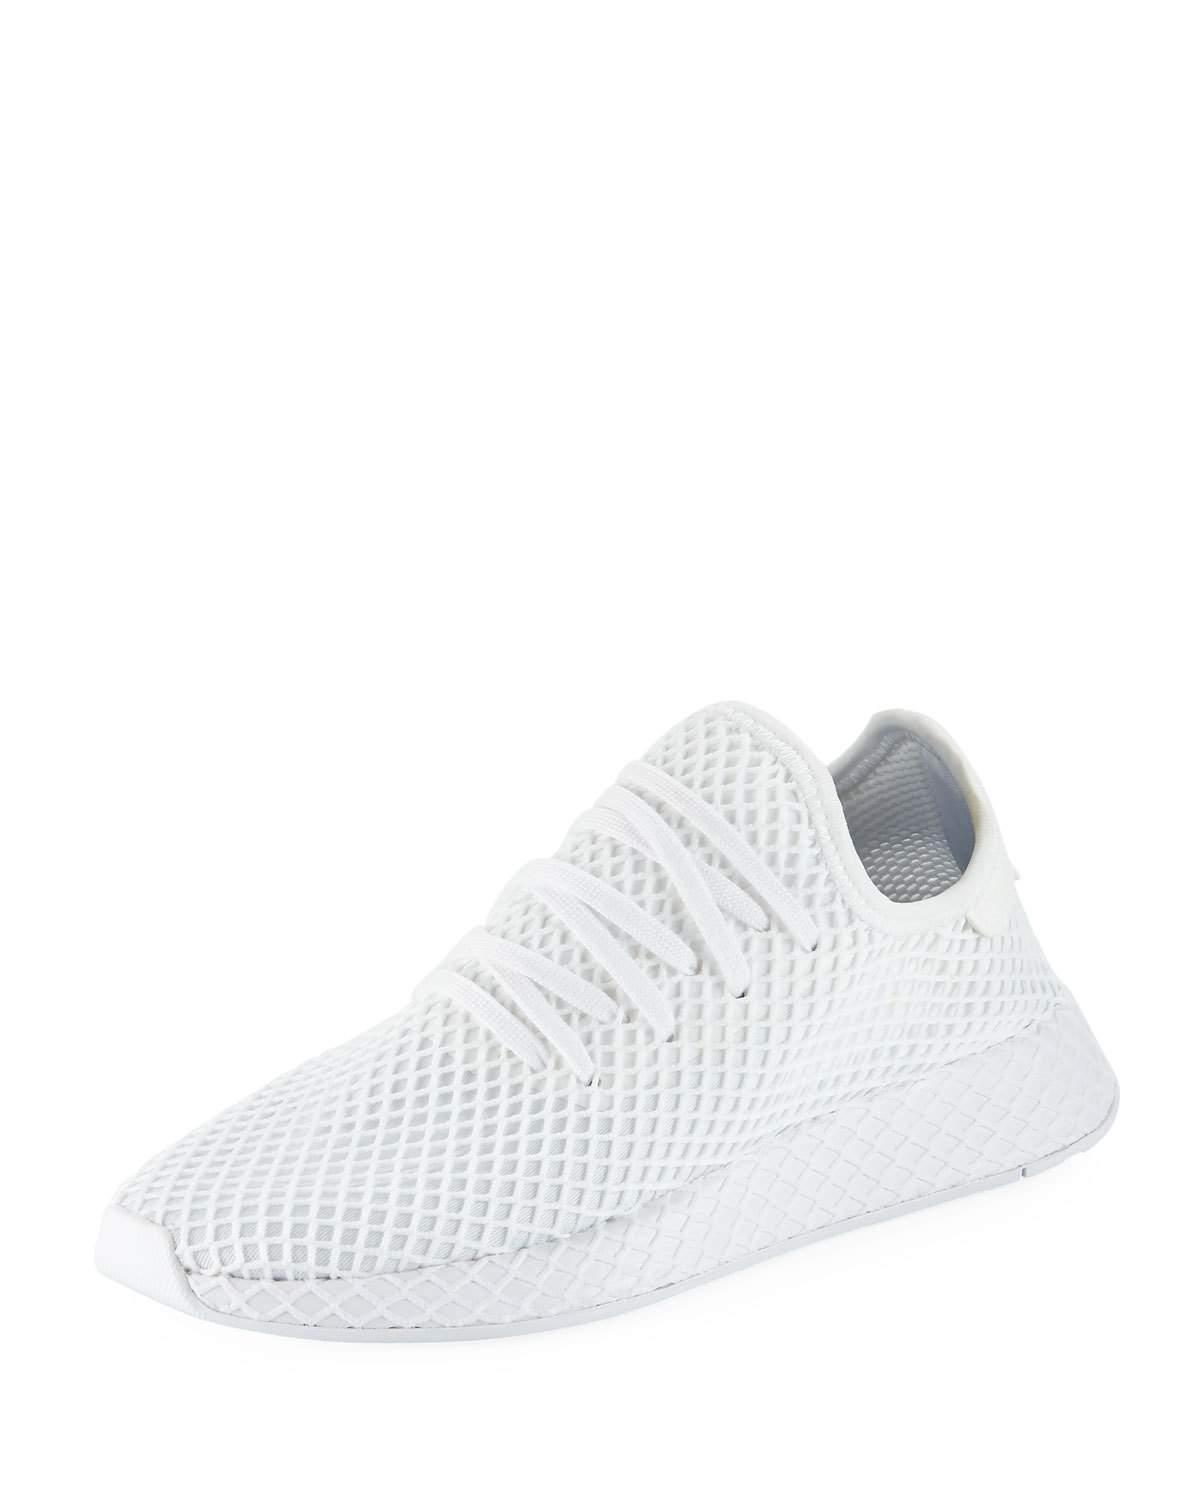 Adidas Originals Adidas Men S Deerupt Runner B Side Pack Casual ... 465fefb8c